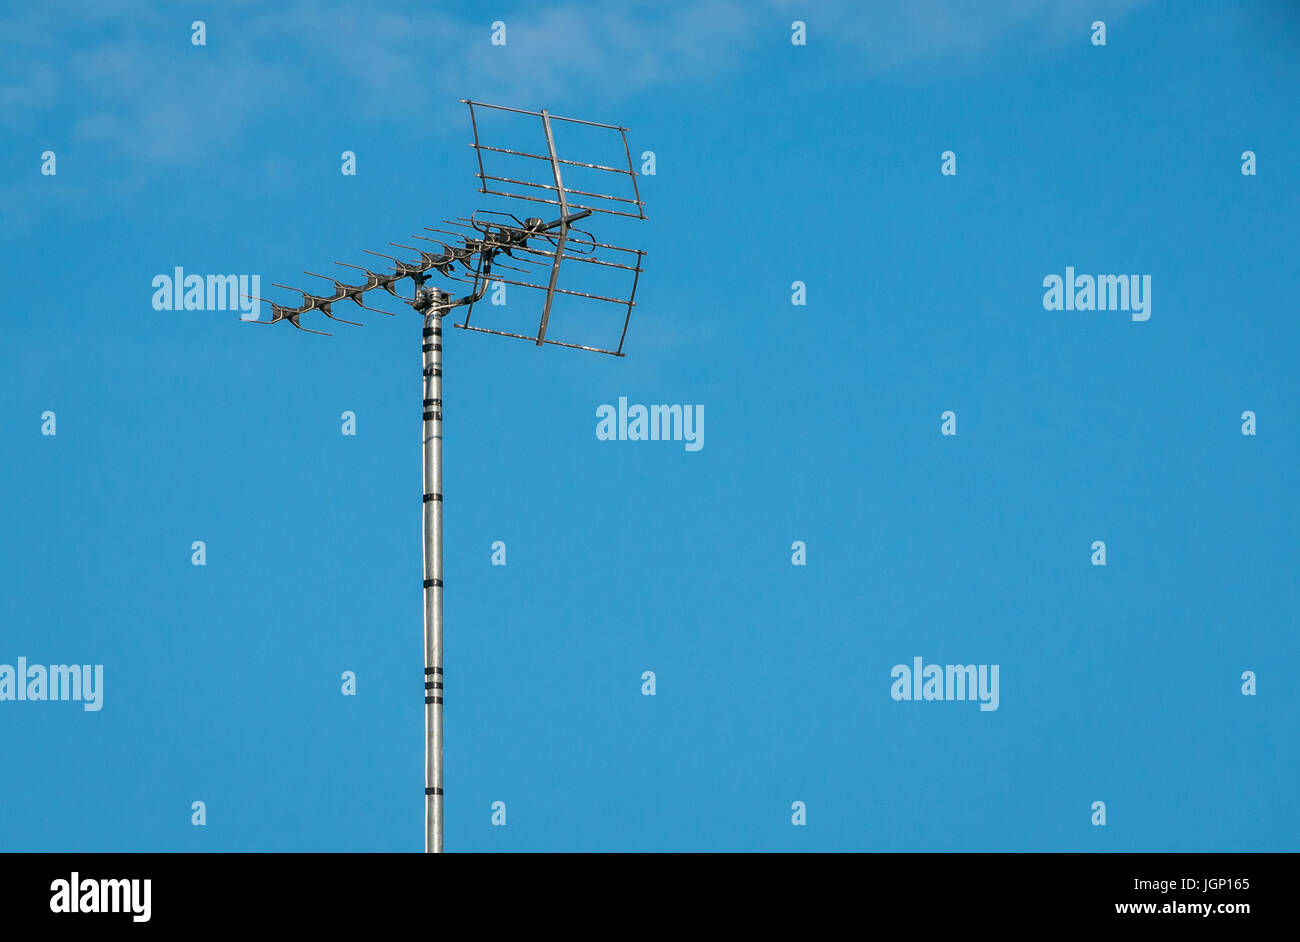 Close up of high rooftop TV aerial against blue sky, London, England, UK - Stock Image